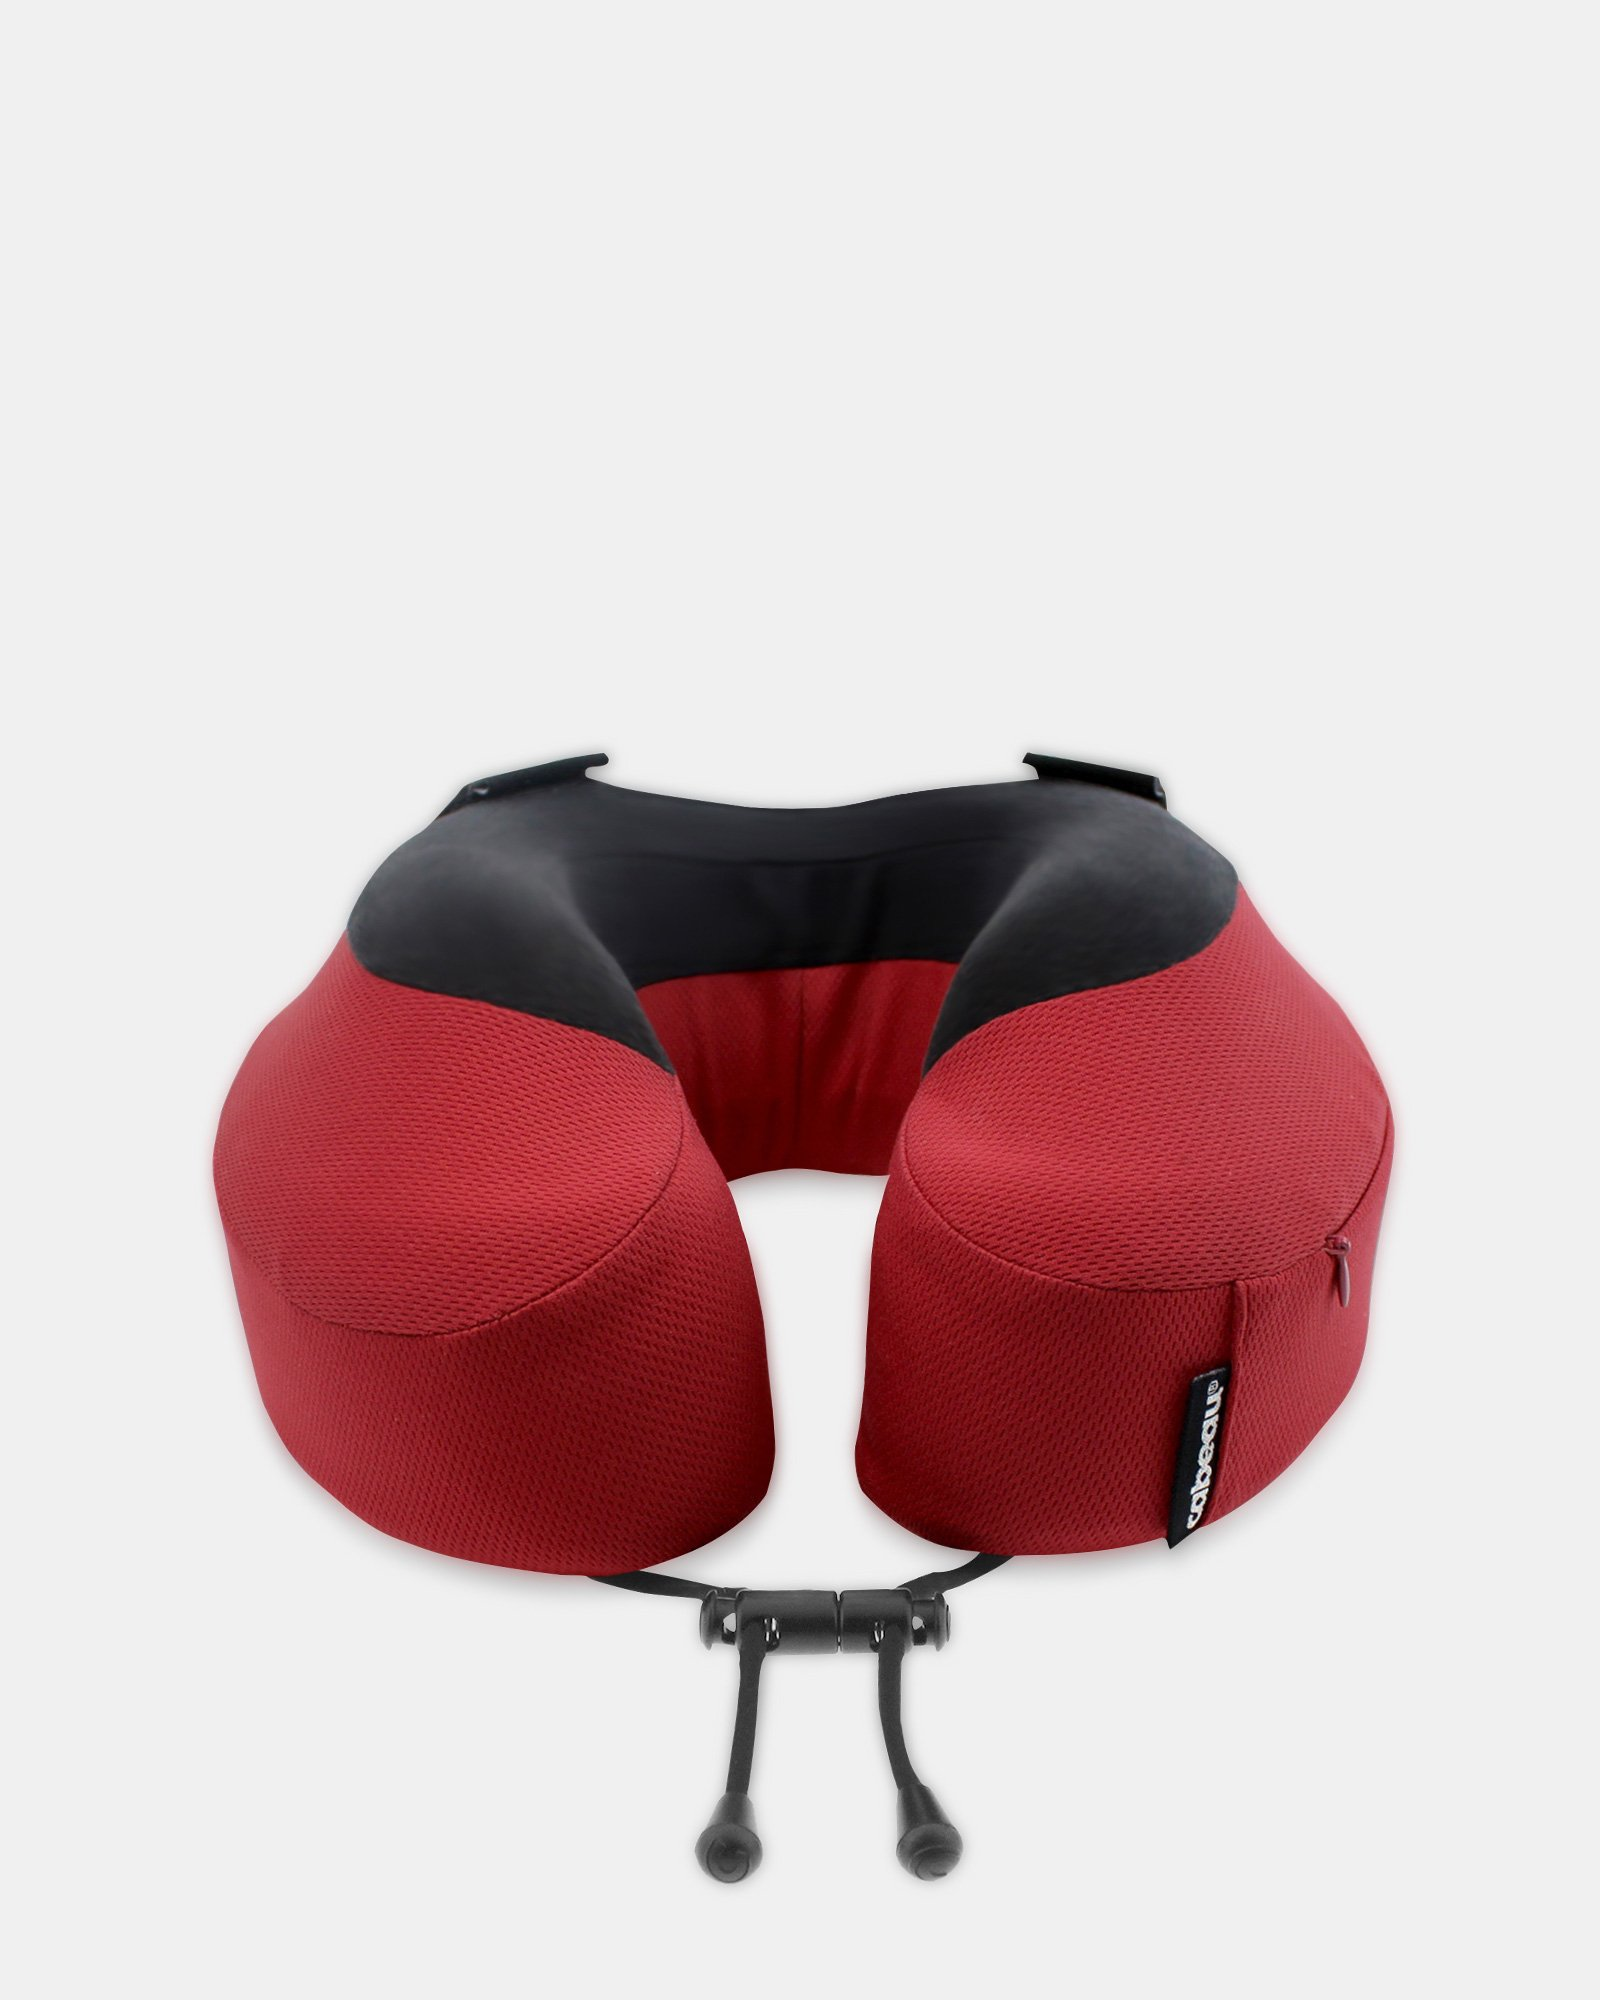 Evolution® S3 Travel Pillow - RED - Cabeau - Zoom